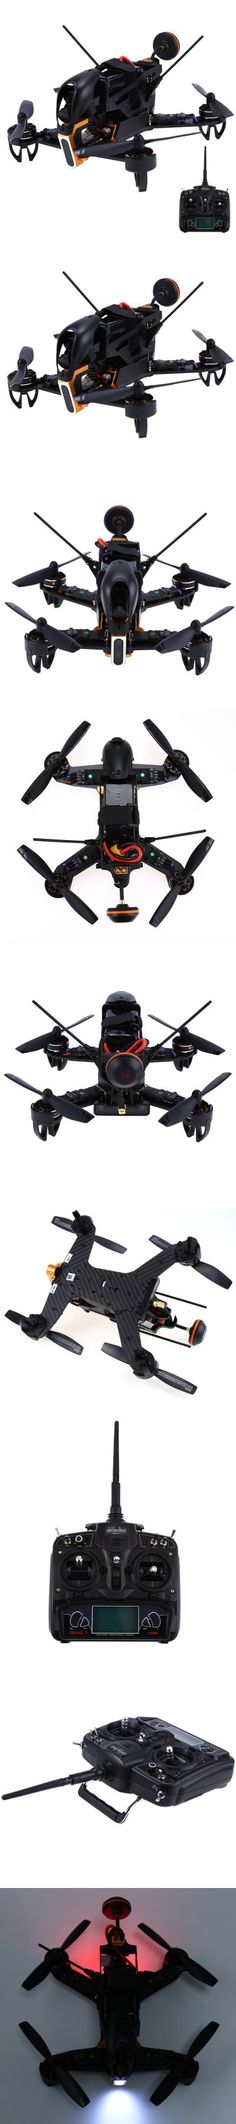 RC Quadcopters | Walkera F210 - 3D 5.8GHz FPV 700TVL Camera 7CH 2.4GHz Racing Drone F3 Upgraded OSD Flight Controller